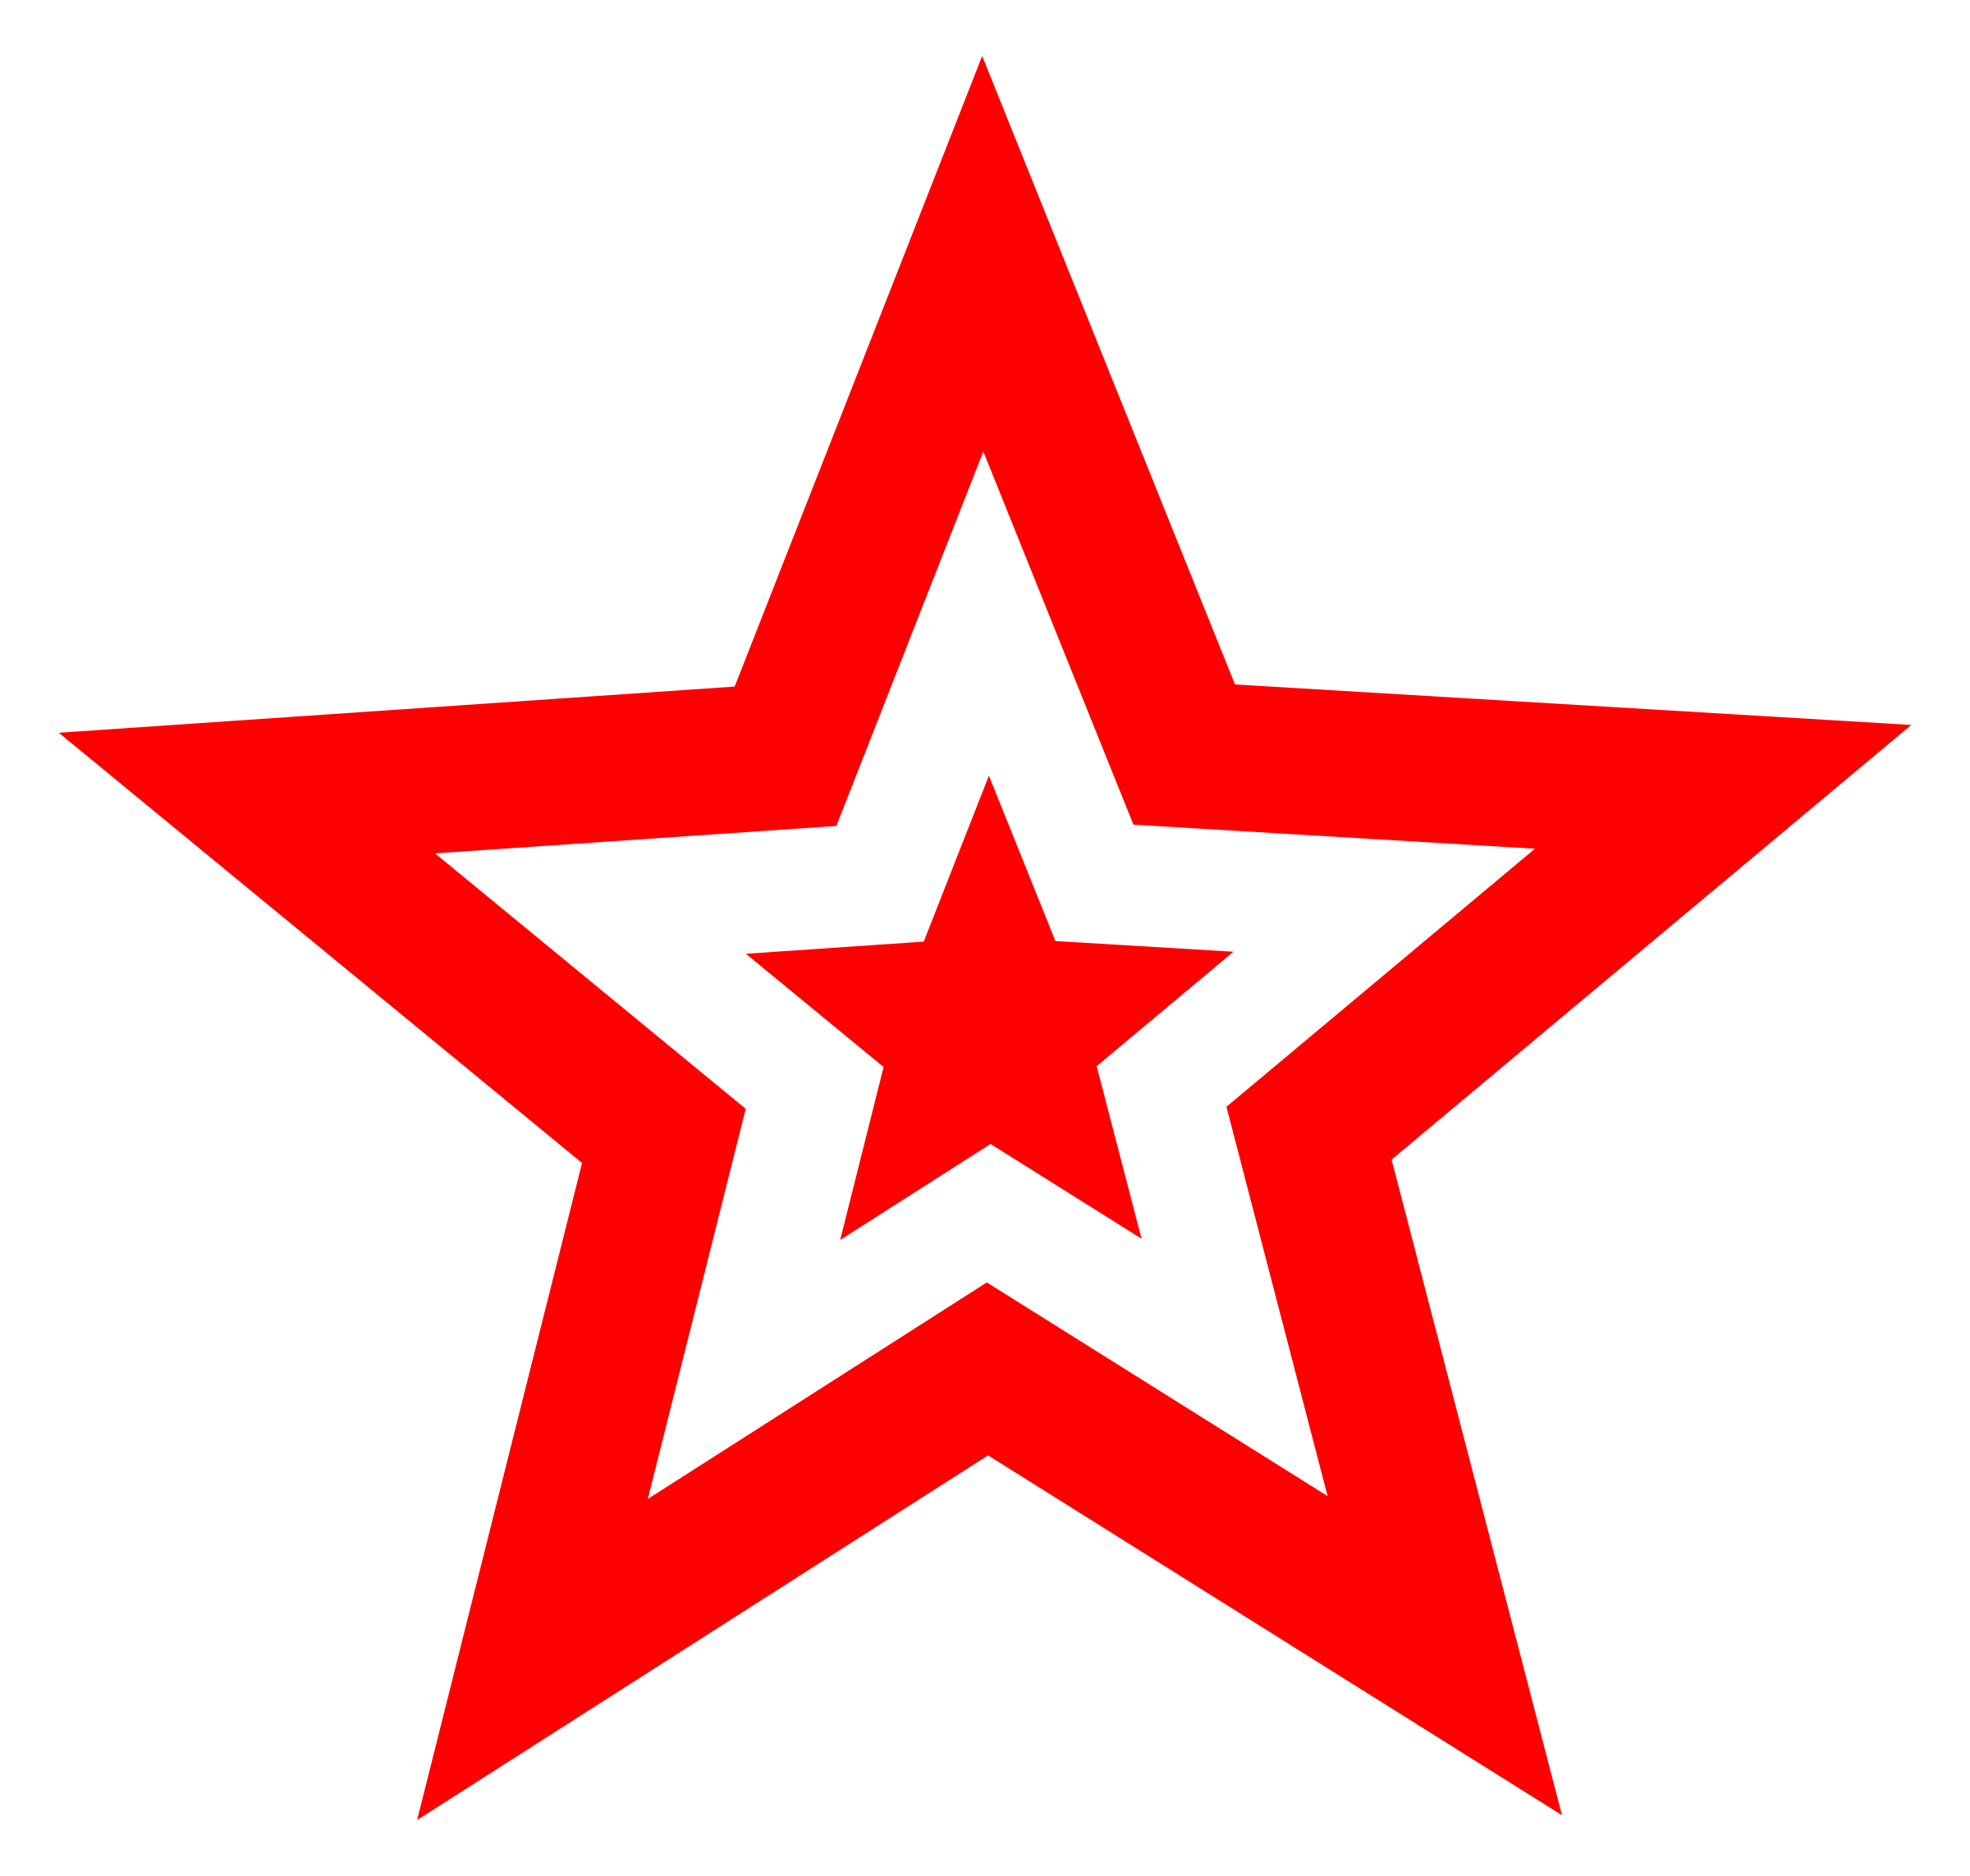 Clipart red star clip art download Clipart - red star in star clip art download